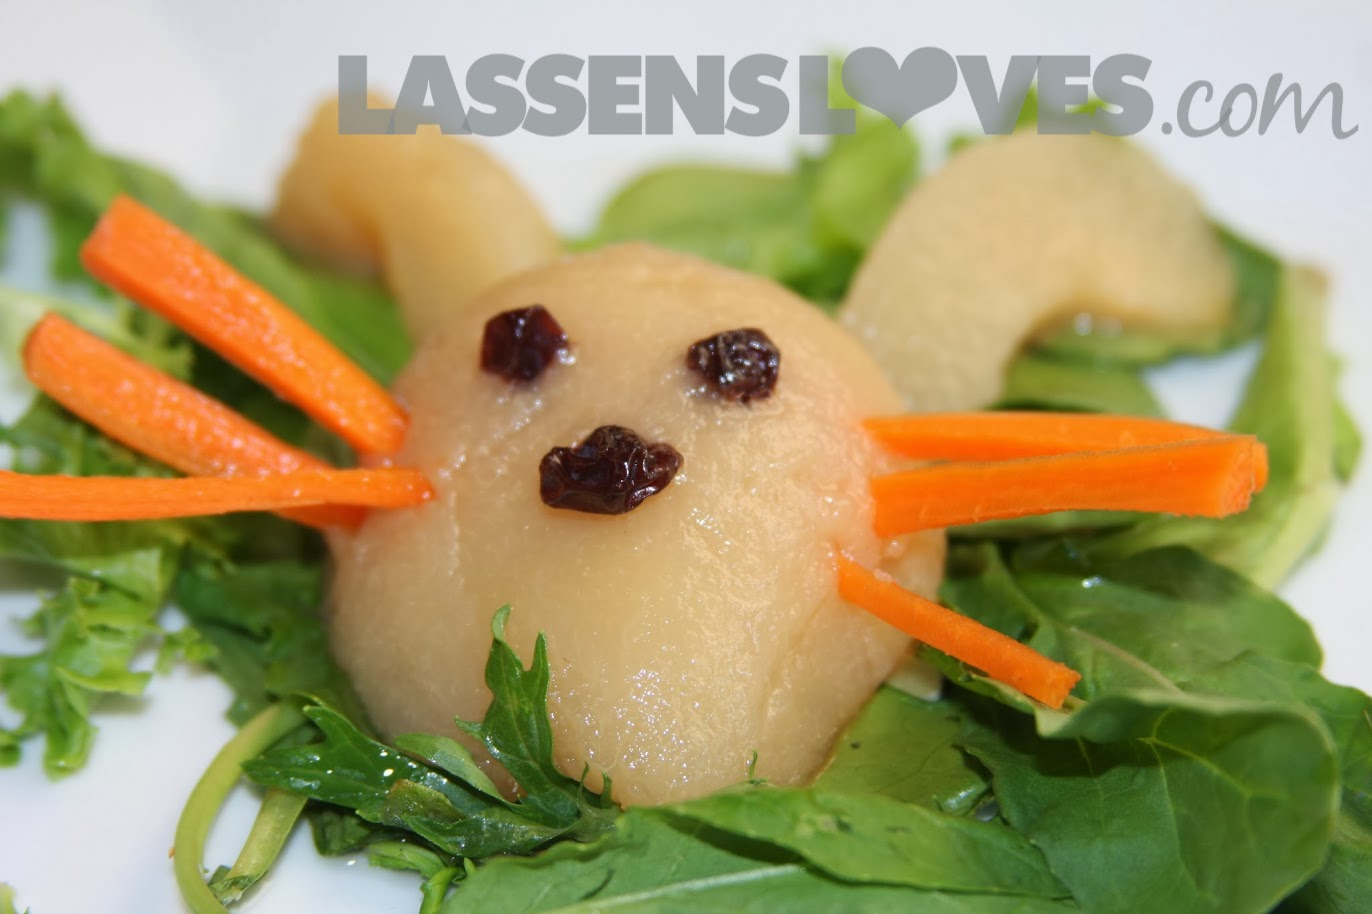 lassensloves.com, Lassen's, Lassens, Cooking+with+Kids